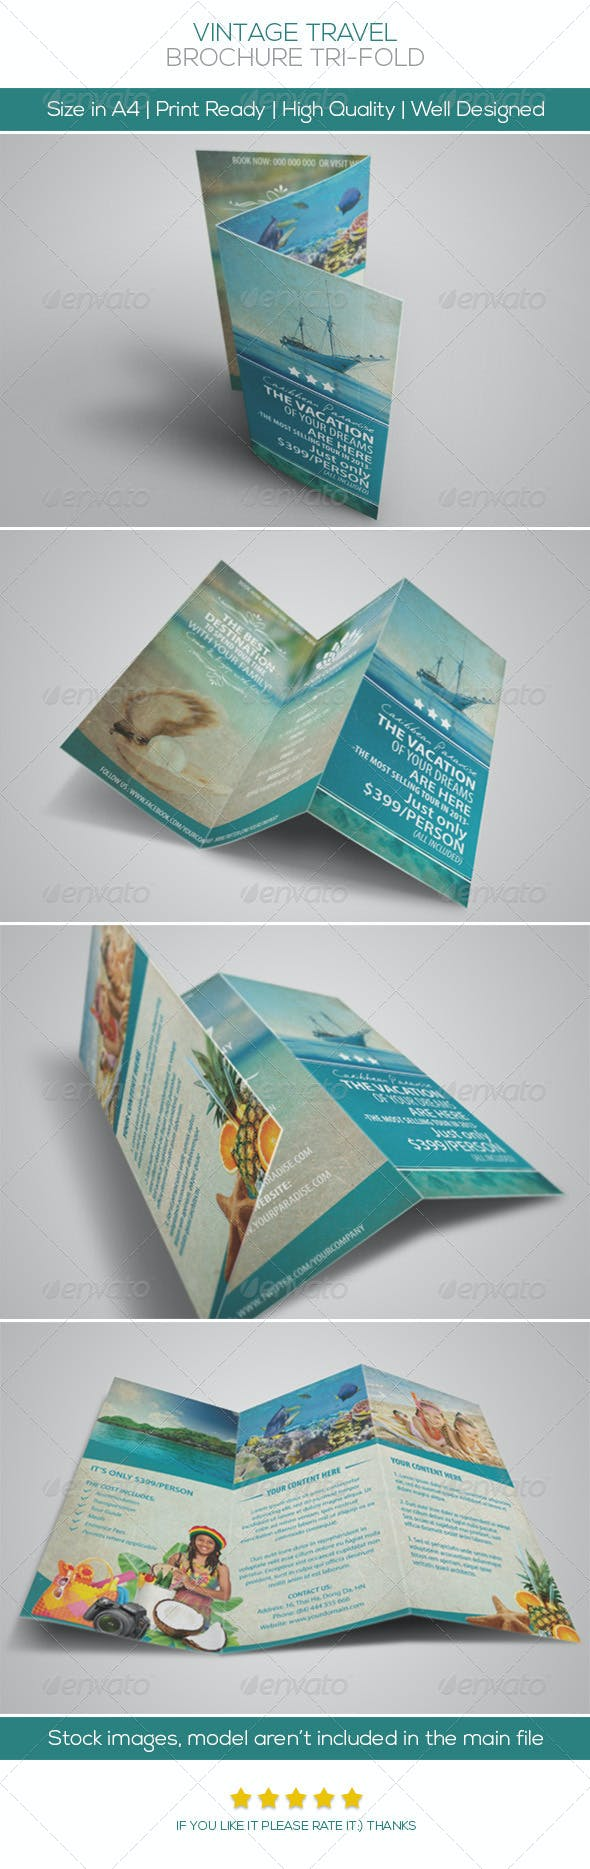 vintage travel brochure tri fold by hoanggiang12 graphicriver